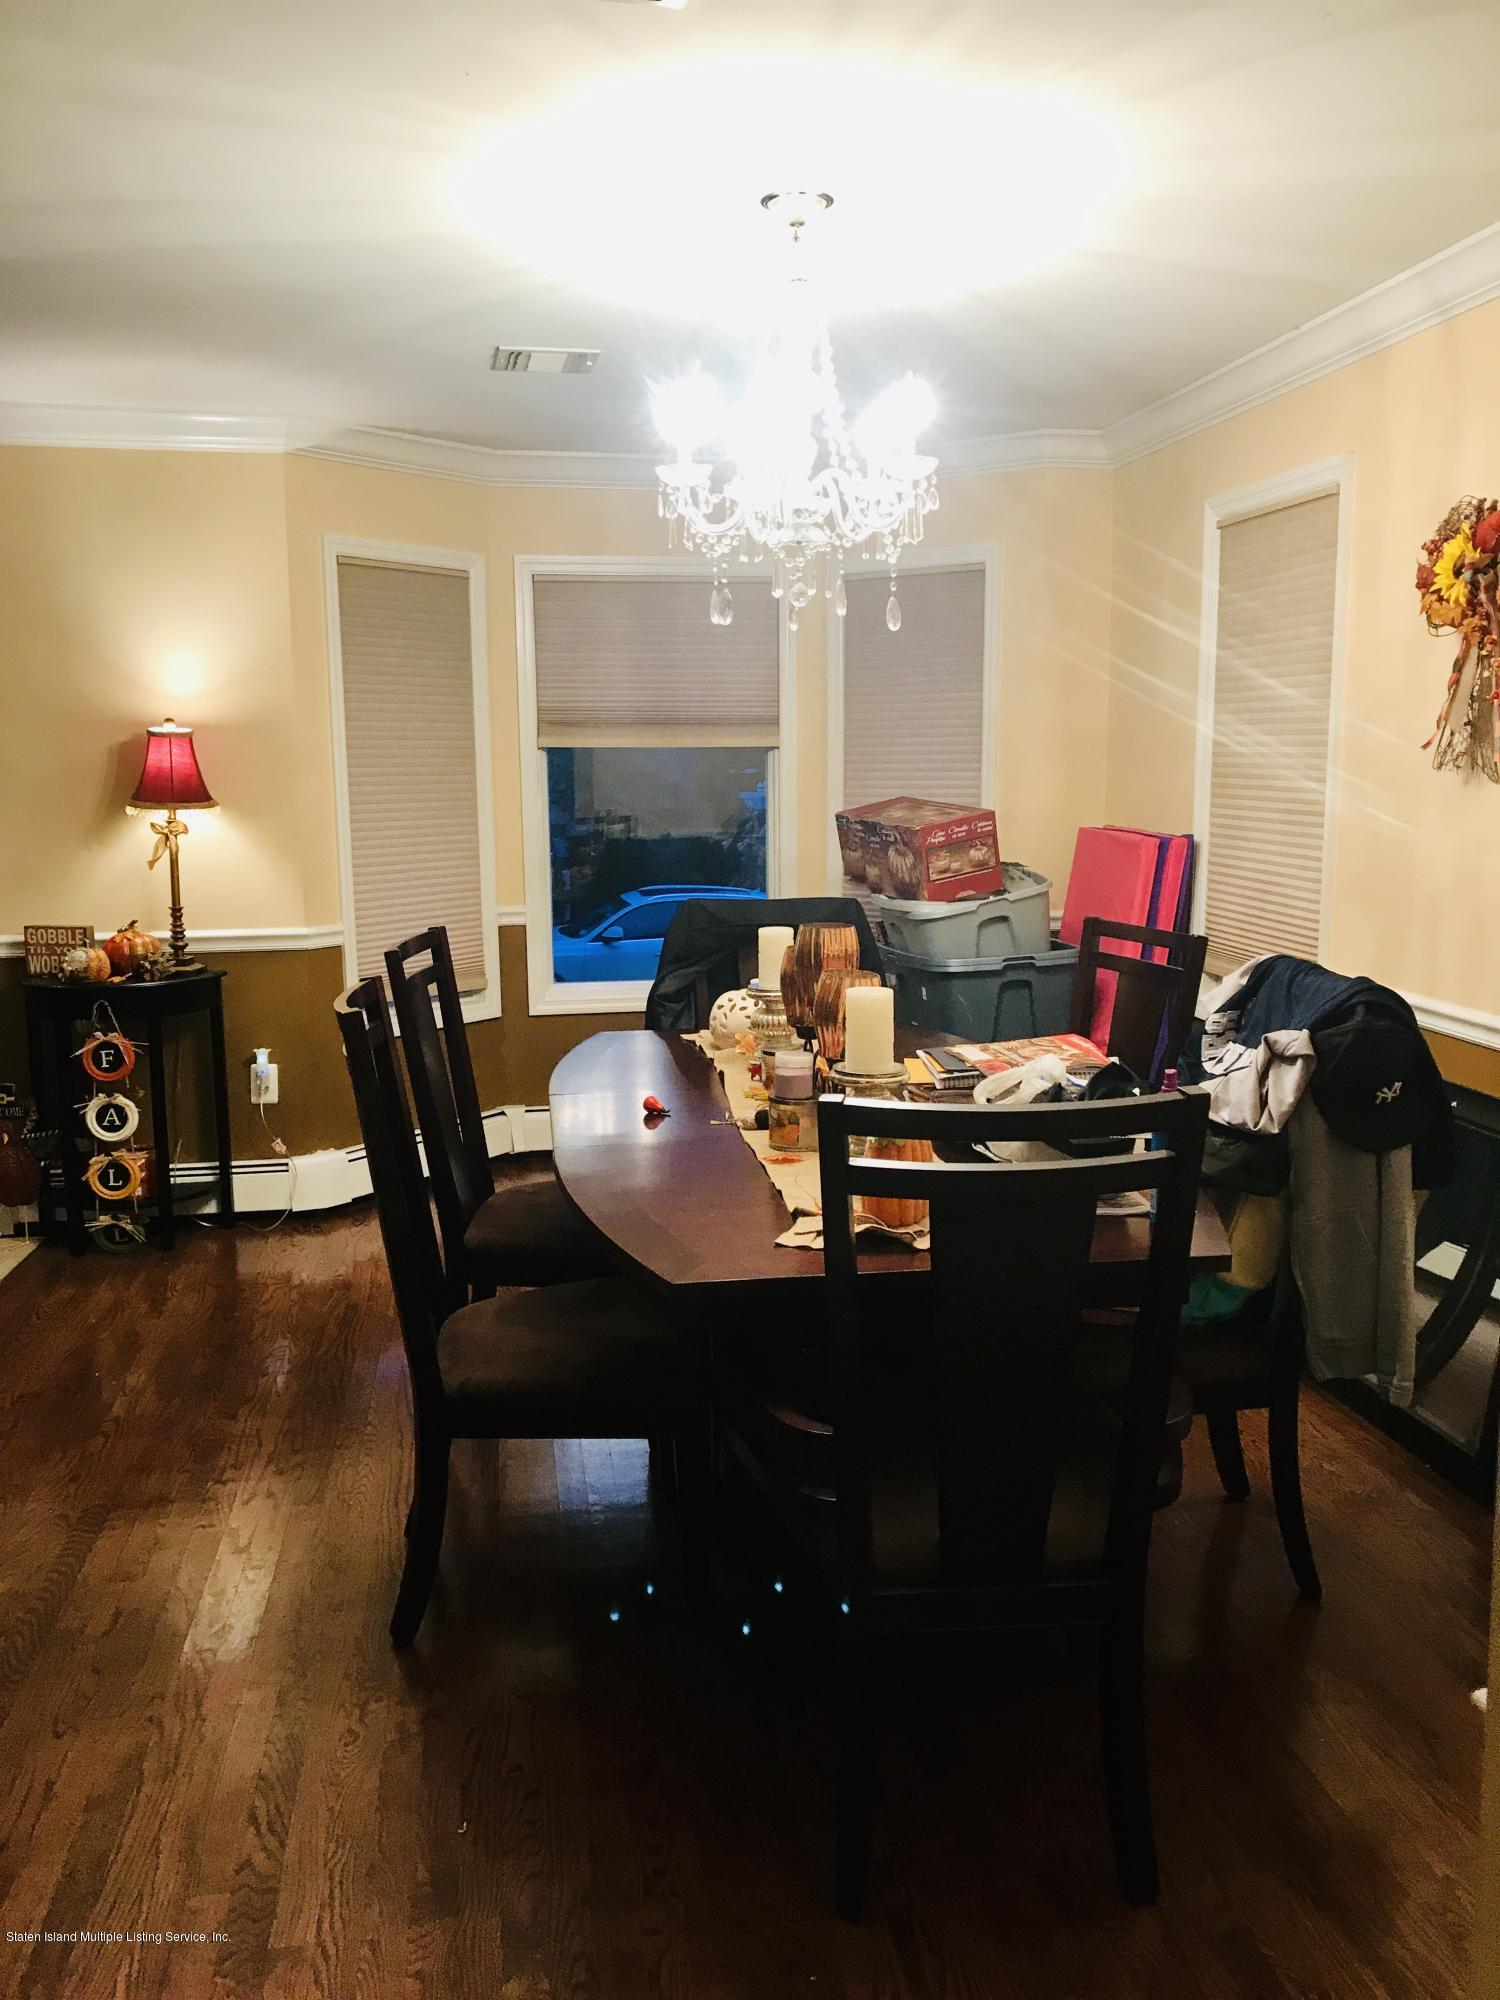 Single Family - Detached 20 Gabrielle Court  Staten Island, NY 10312, MLS-1123867-9